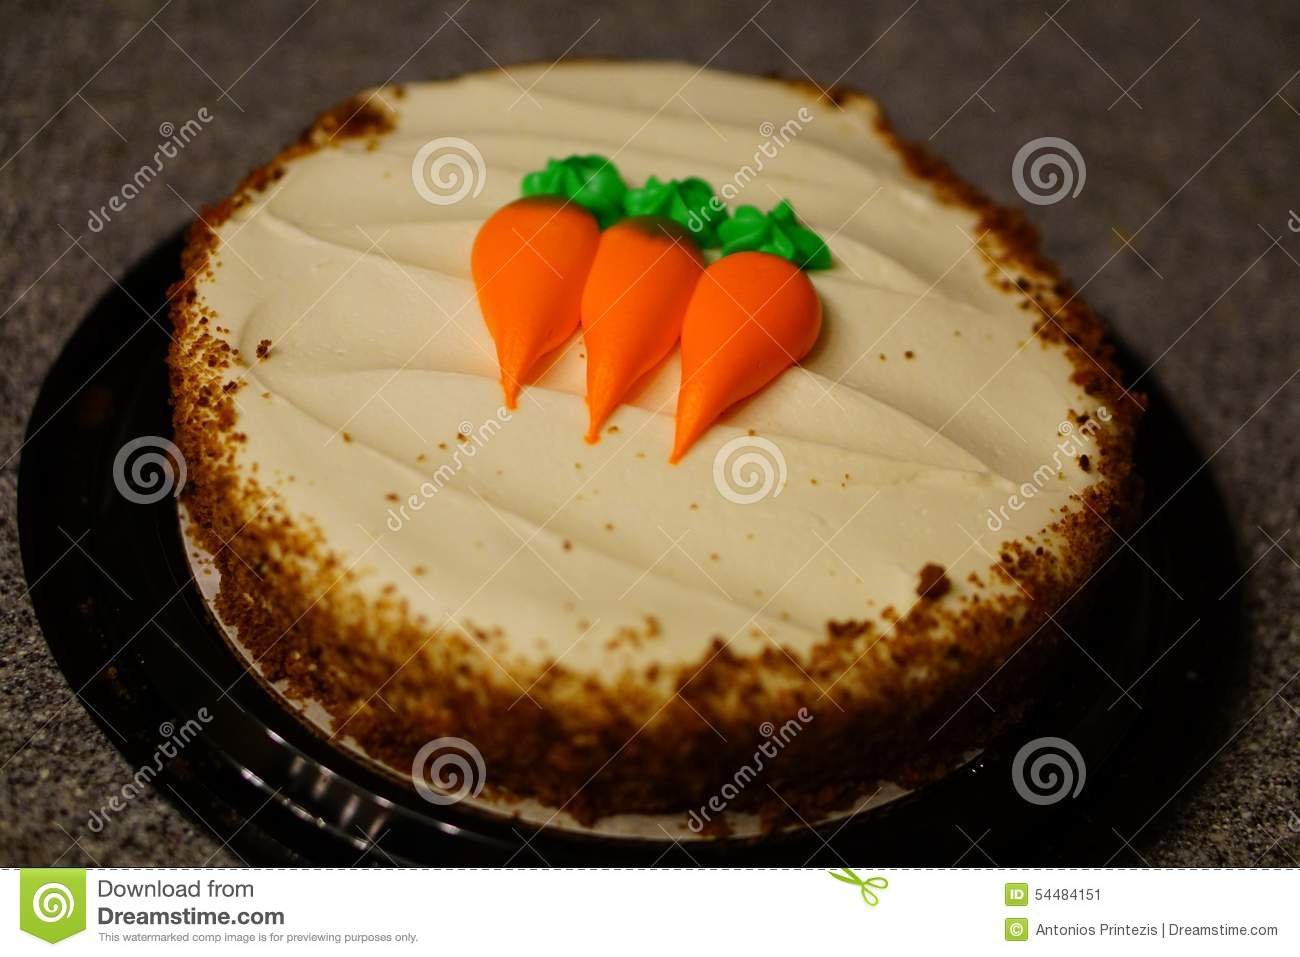 Carrot Cake Stock Image Image Of Icing Cake Carrots 54484151